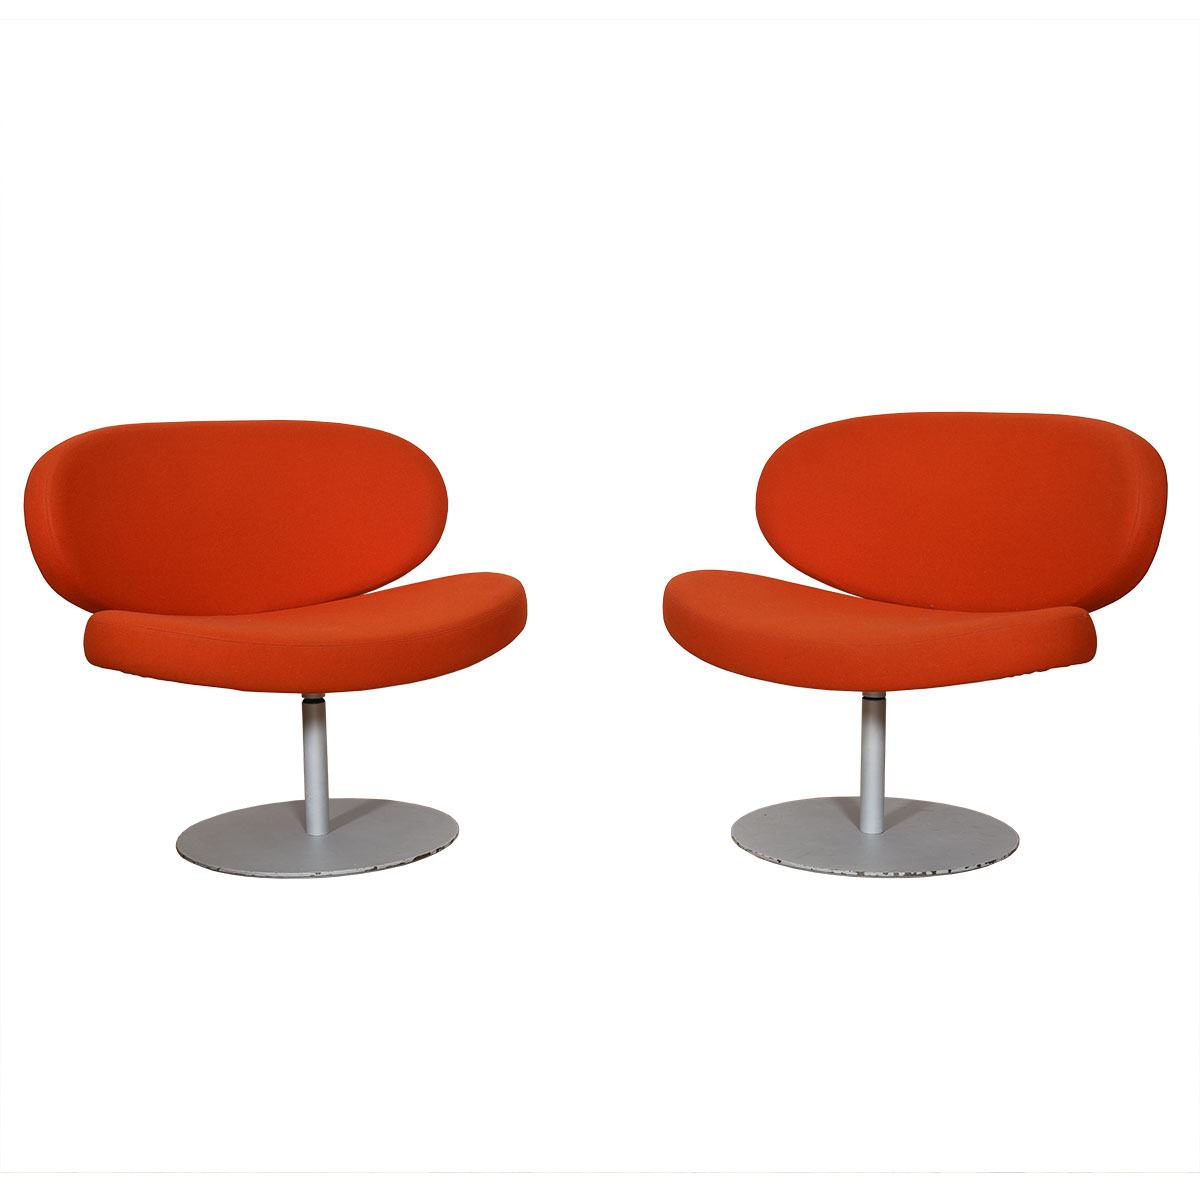 Pair Mid Century 'Orange Slice' Lounge Chairs